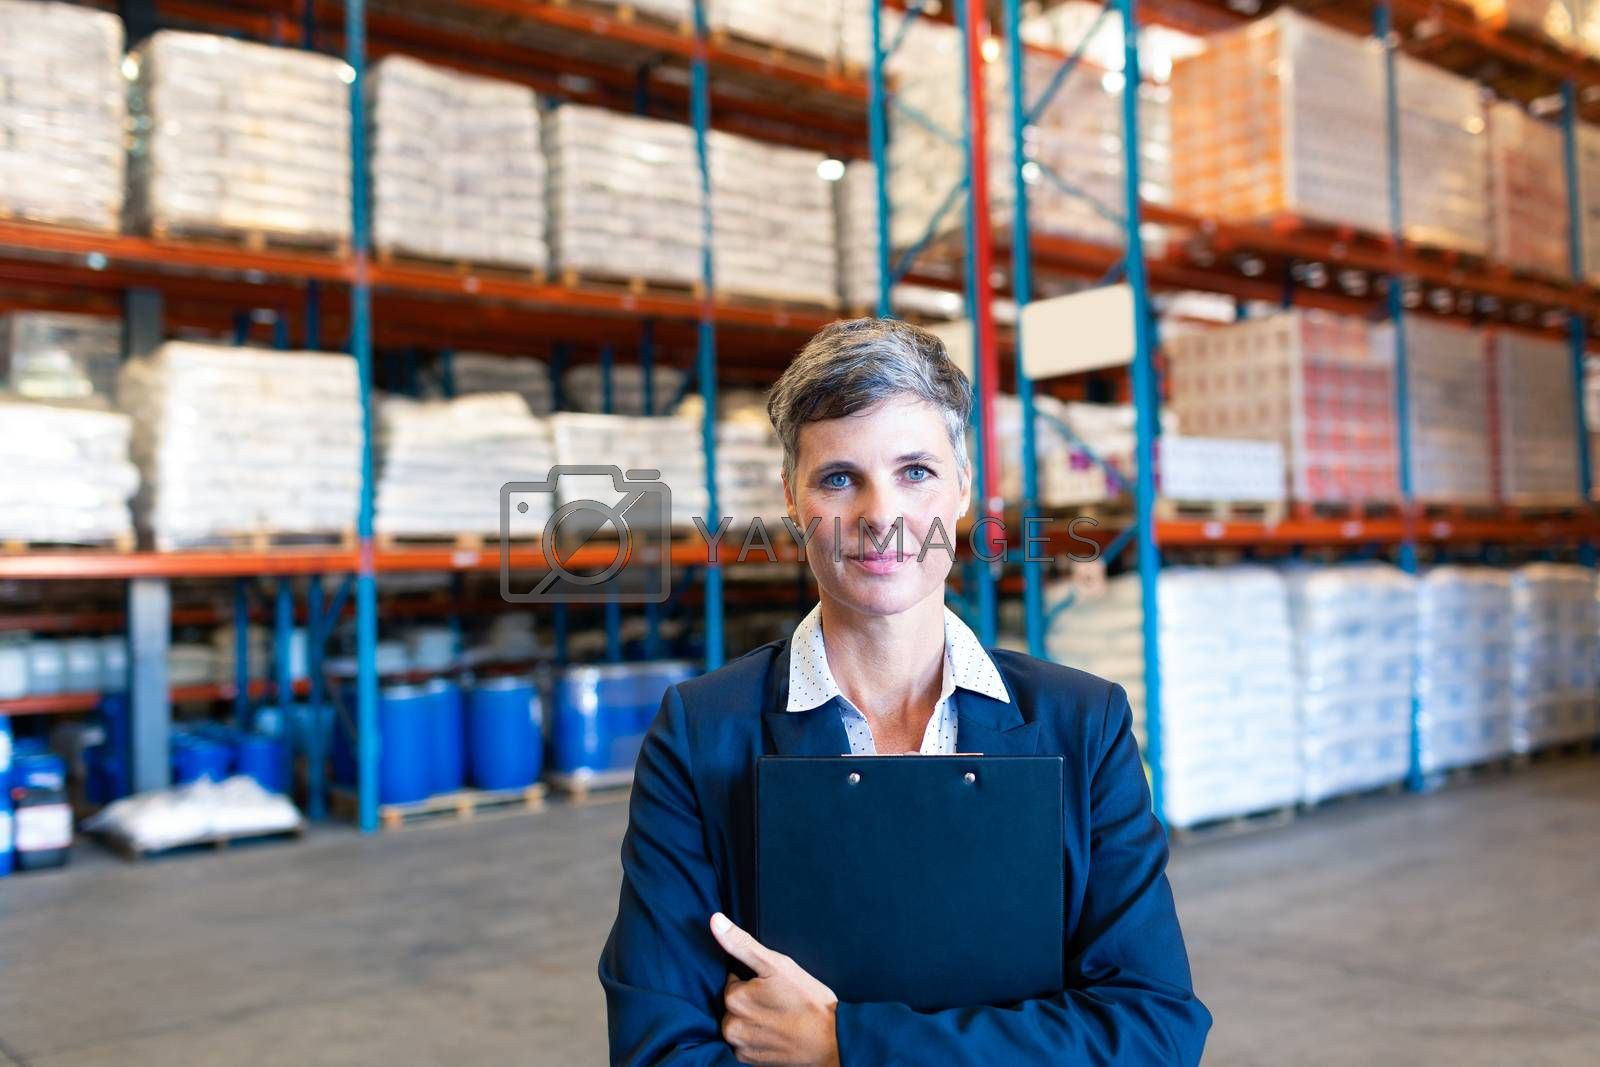 Portrait of beautiful mature Caucasian female manager holding clipboard and looking at camera in warehouse. This is a freight transportation and distribution warehouse. Industrial and industrial workers concept